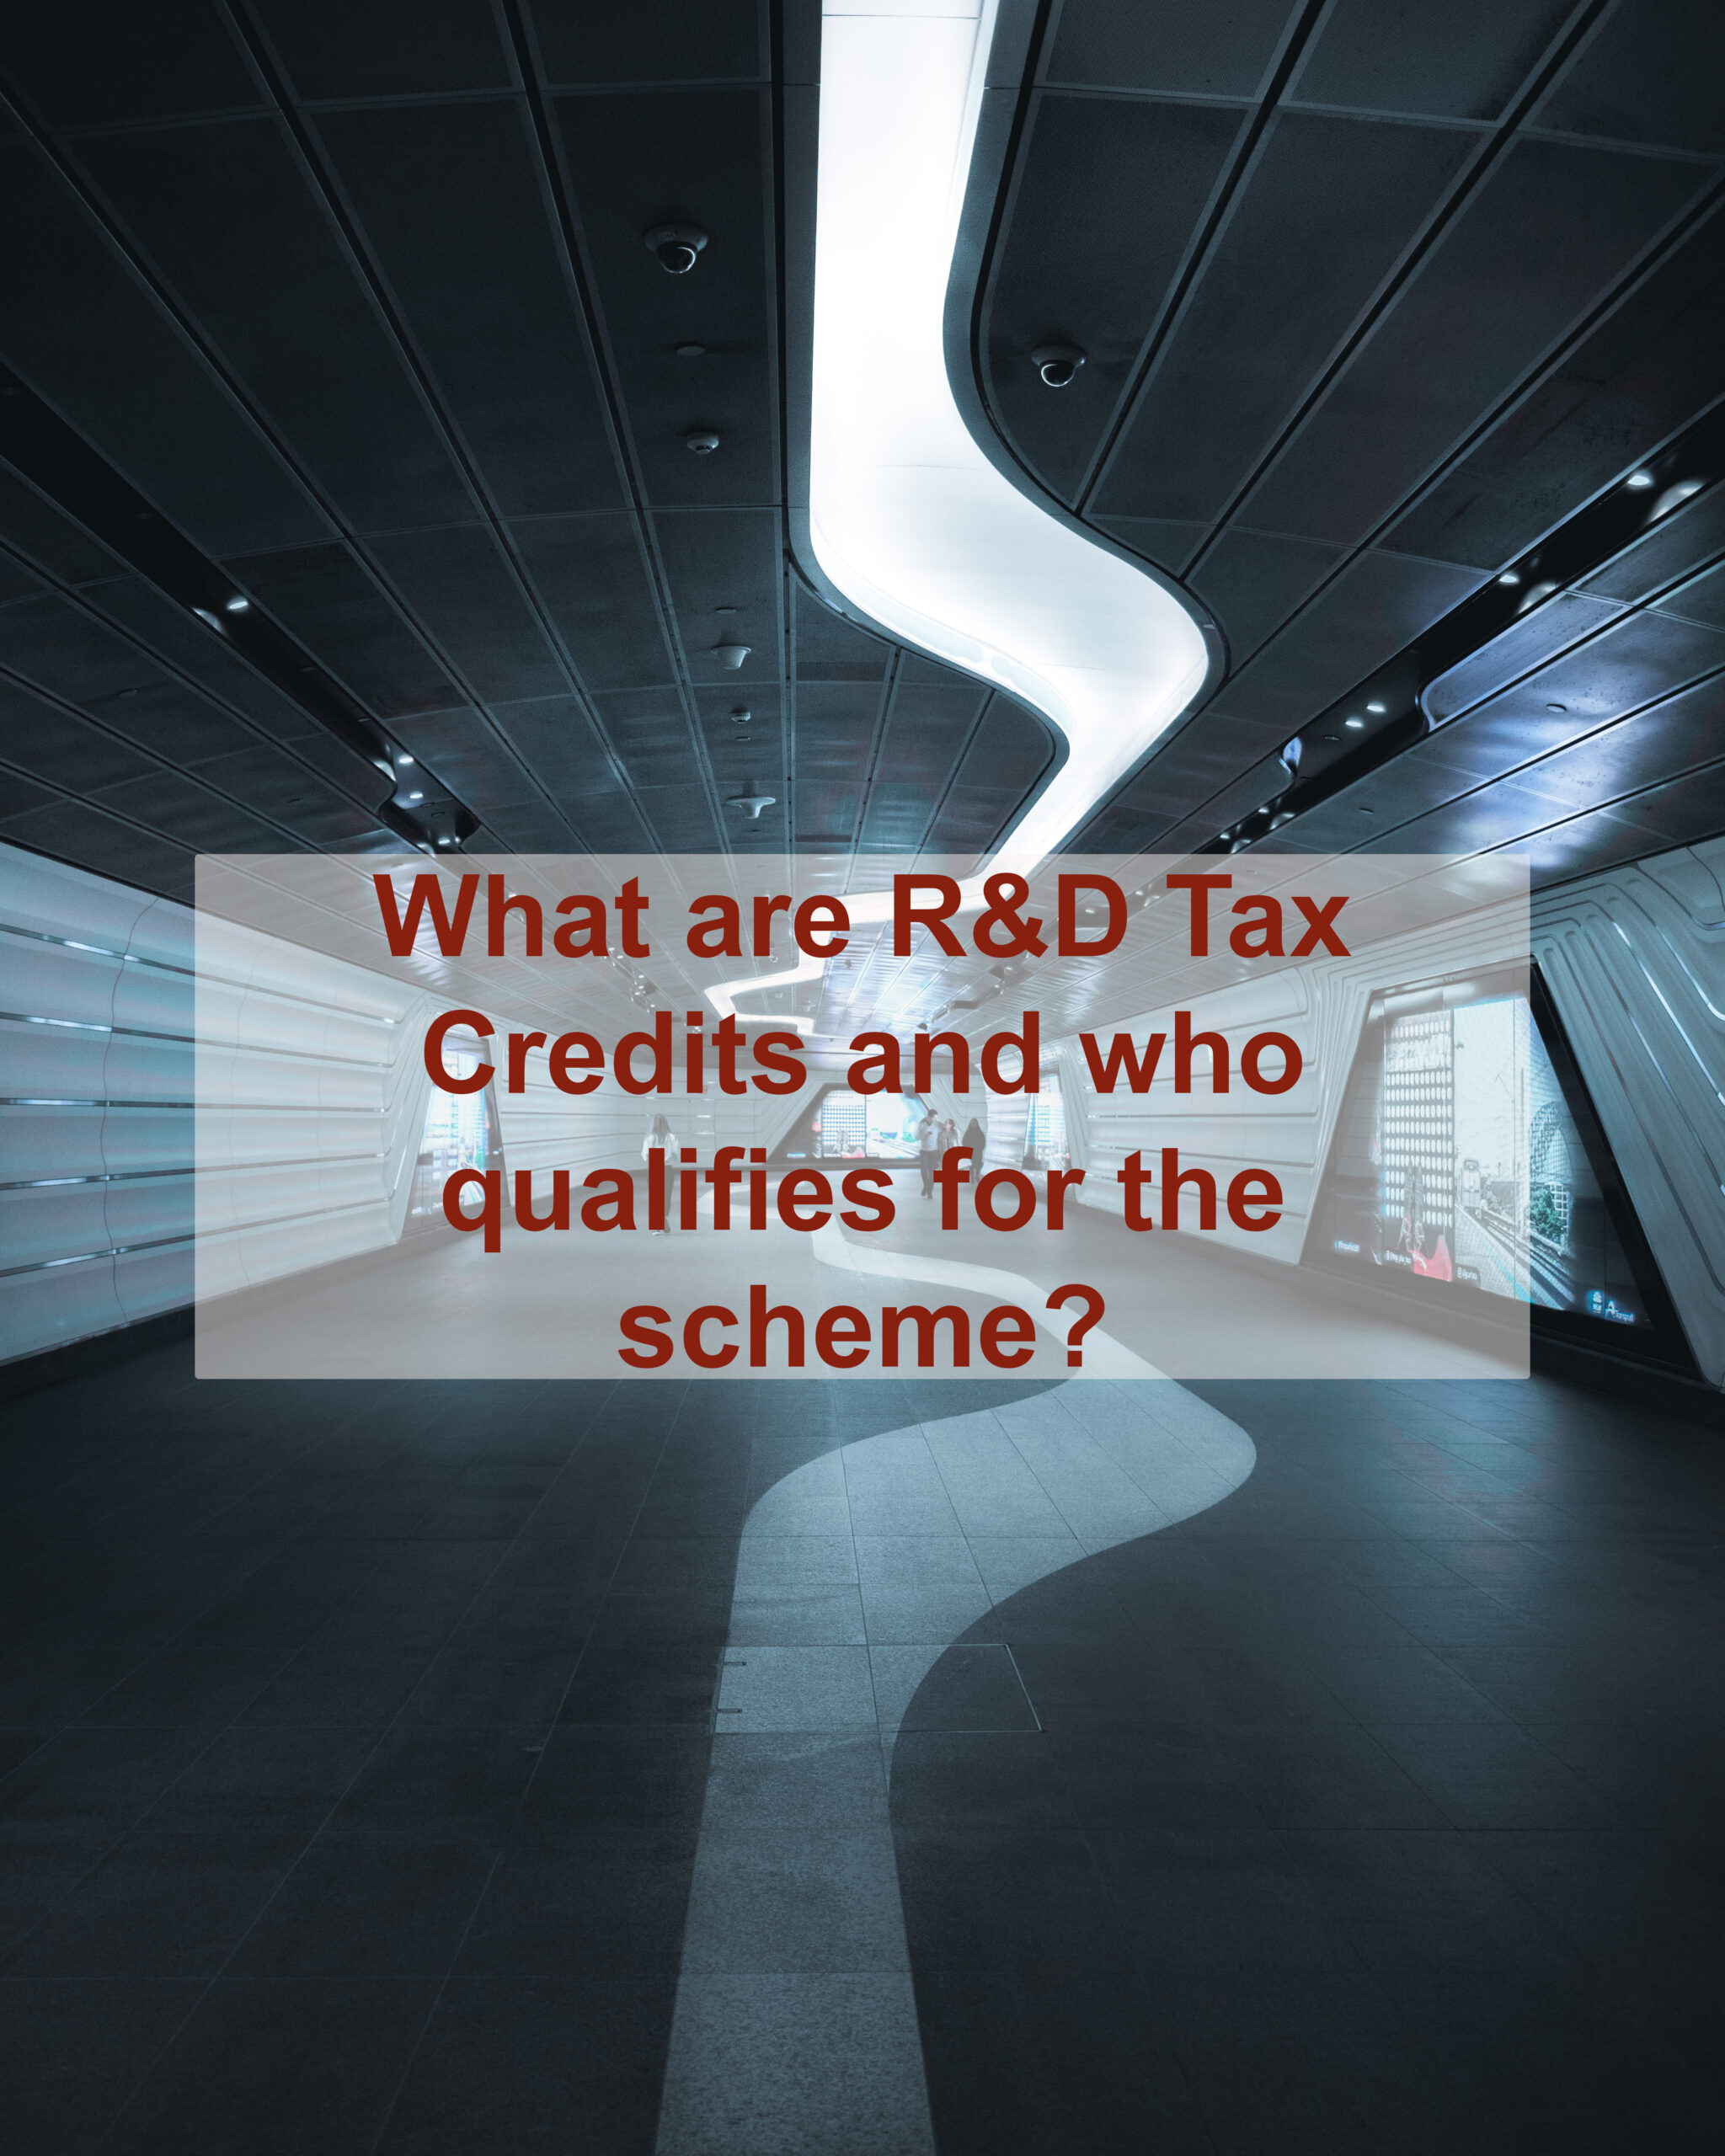 What are R&D Tax Credits and who qualifies for the scheme?